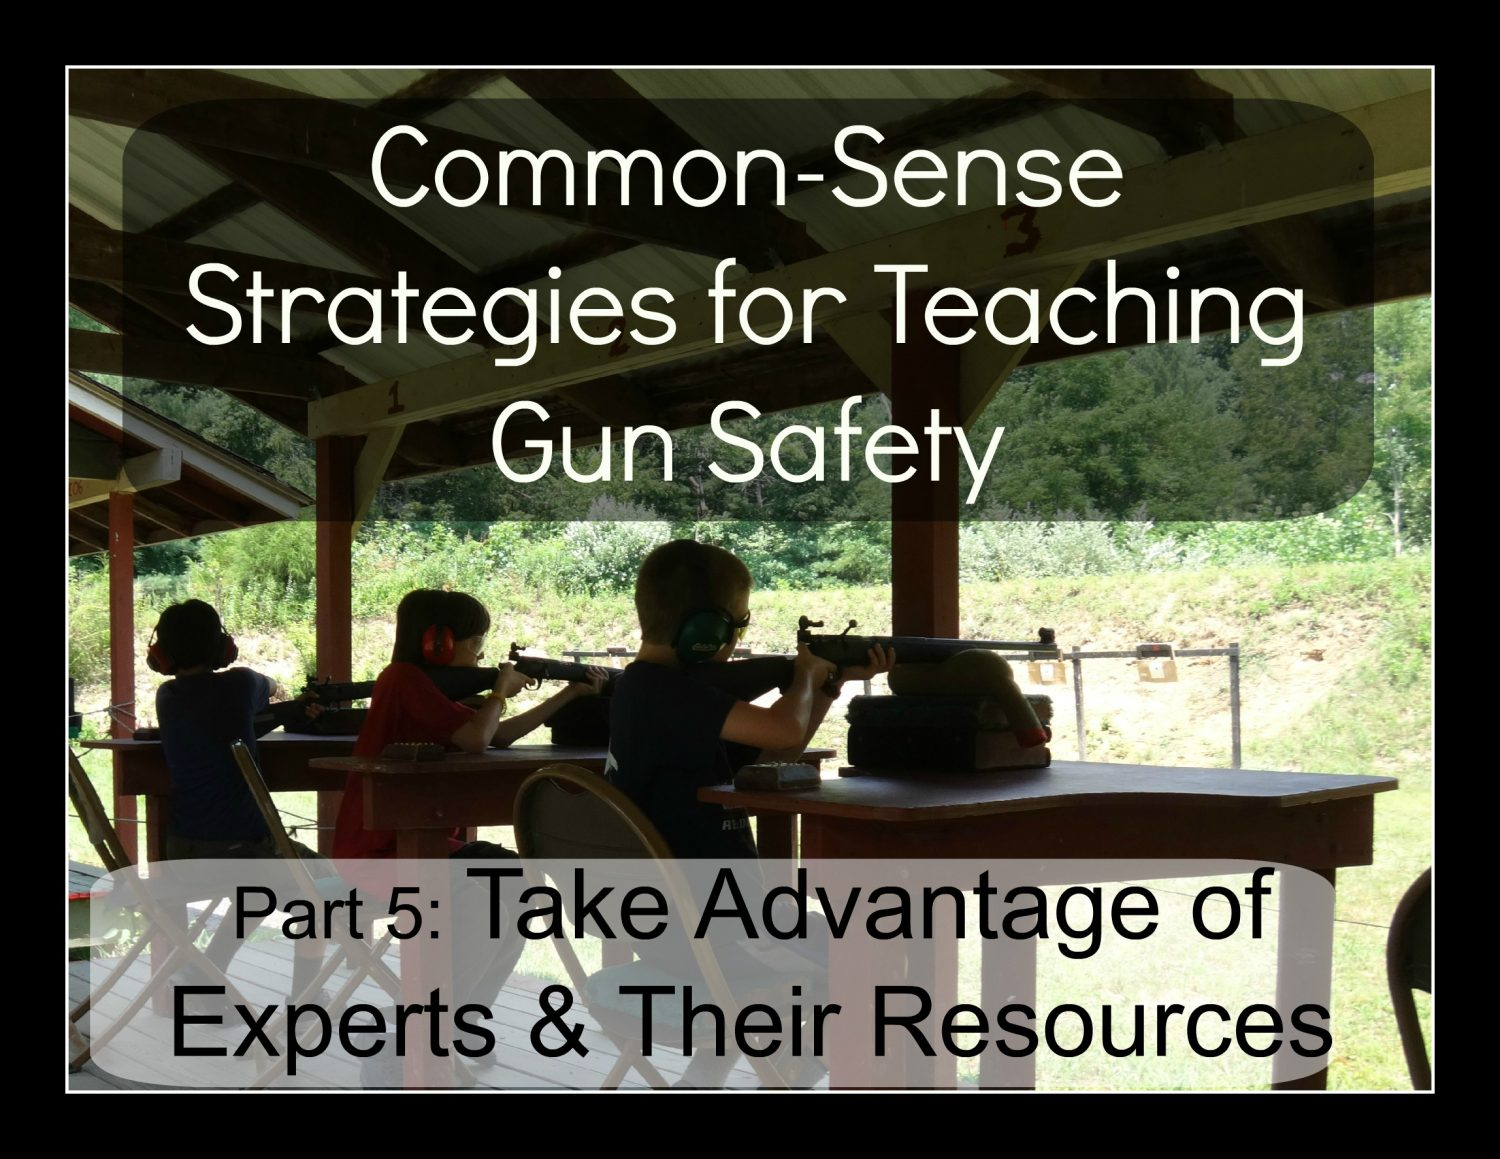 Common Sense Strategies for Teaching Gun Safety: Take Advantage of Experts & Their Resources